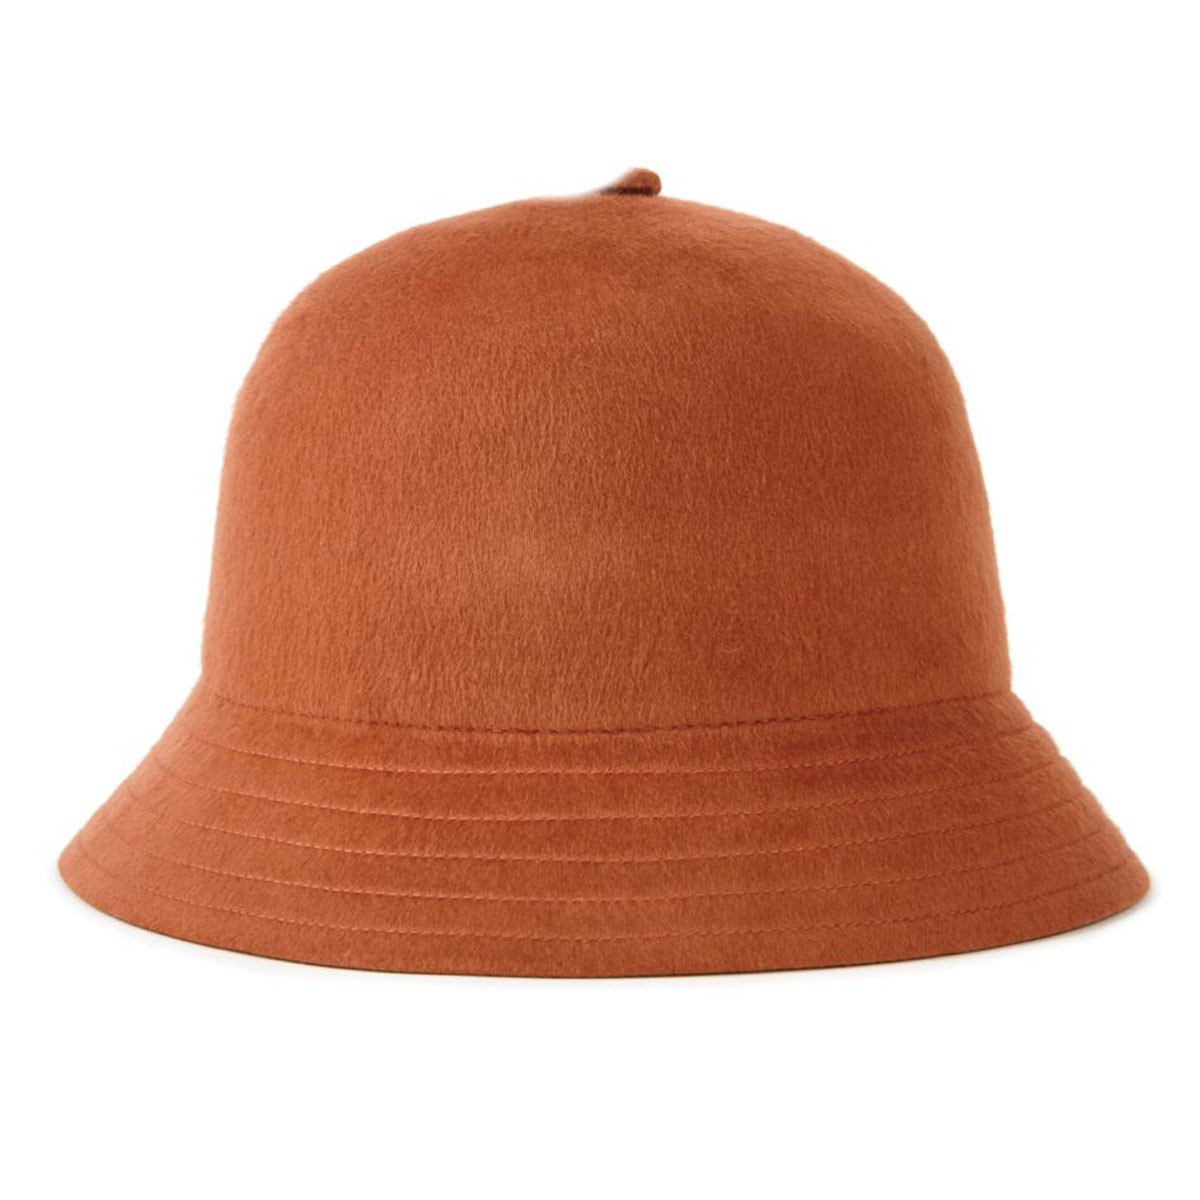 Brixton Womens Essex Bucket Hat - Rust 3b0557ff362f